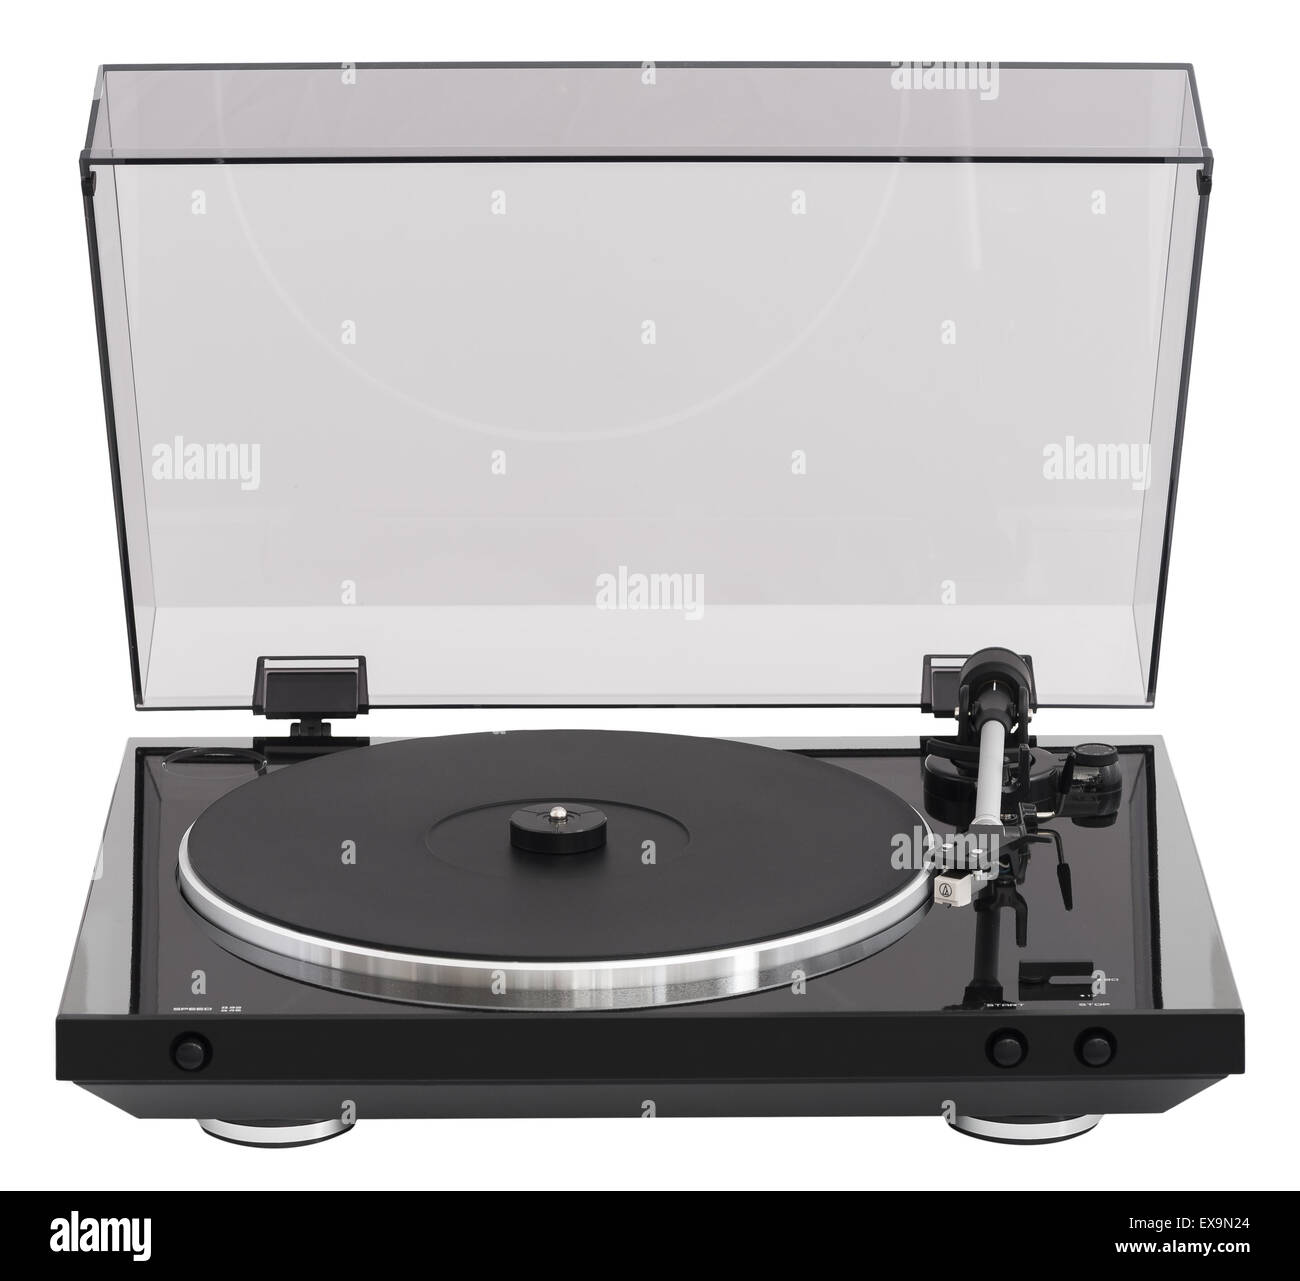 Simple Turntable, Analog Music Player Isolated on White Background - Stock Image